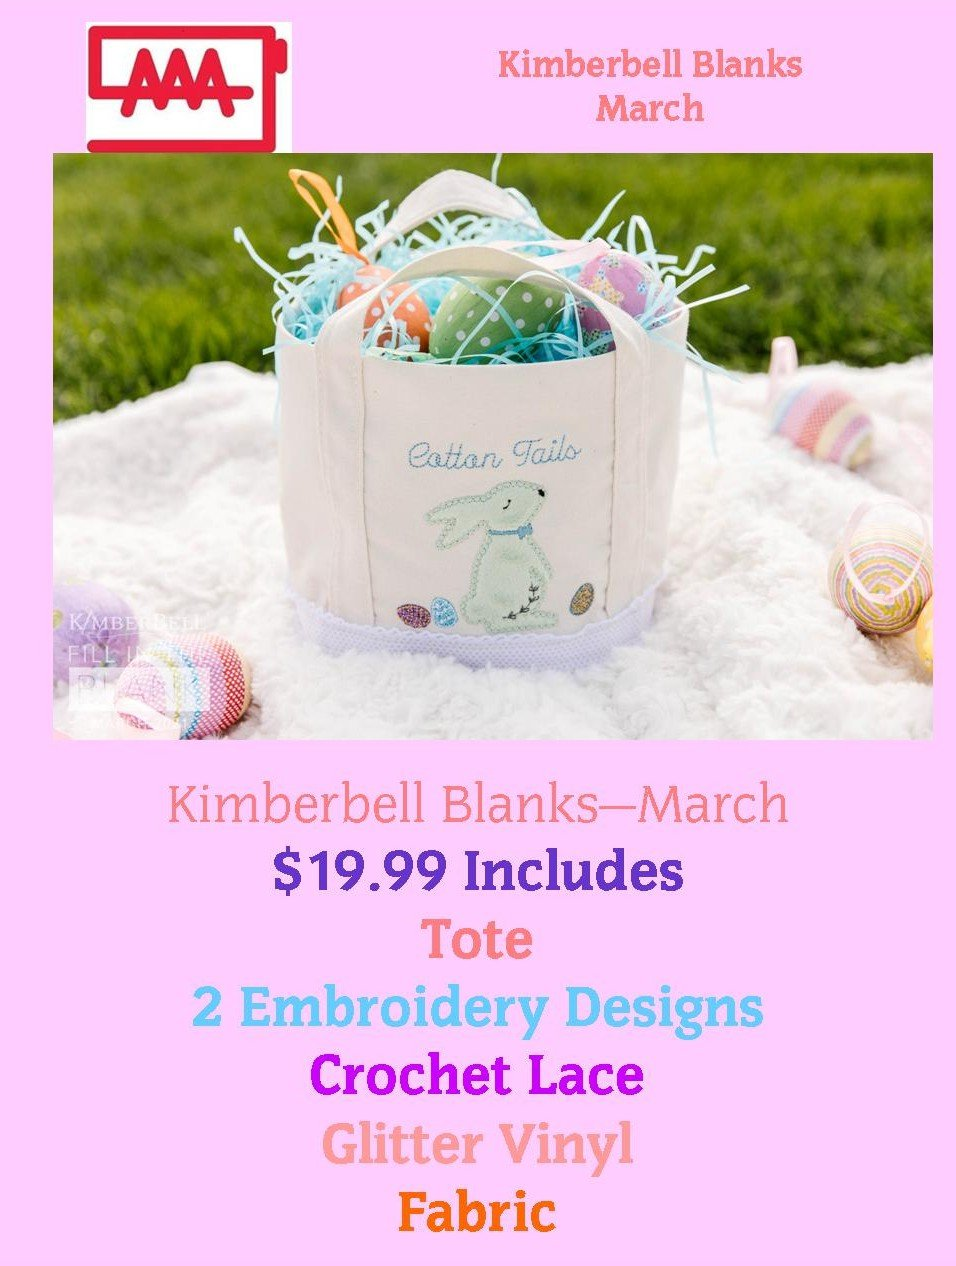 Kimberbell March Blank Kit - Bunny Busket (Kit Shipped to You)